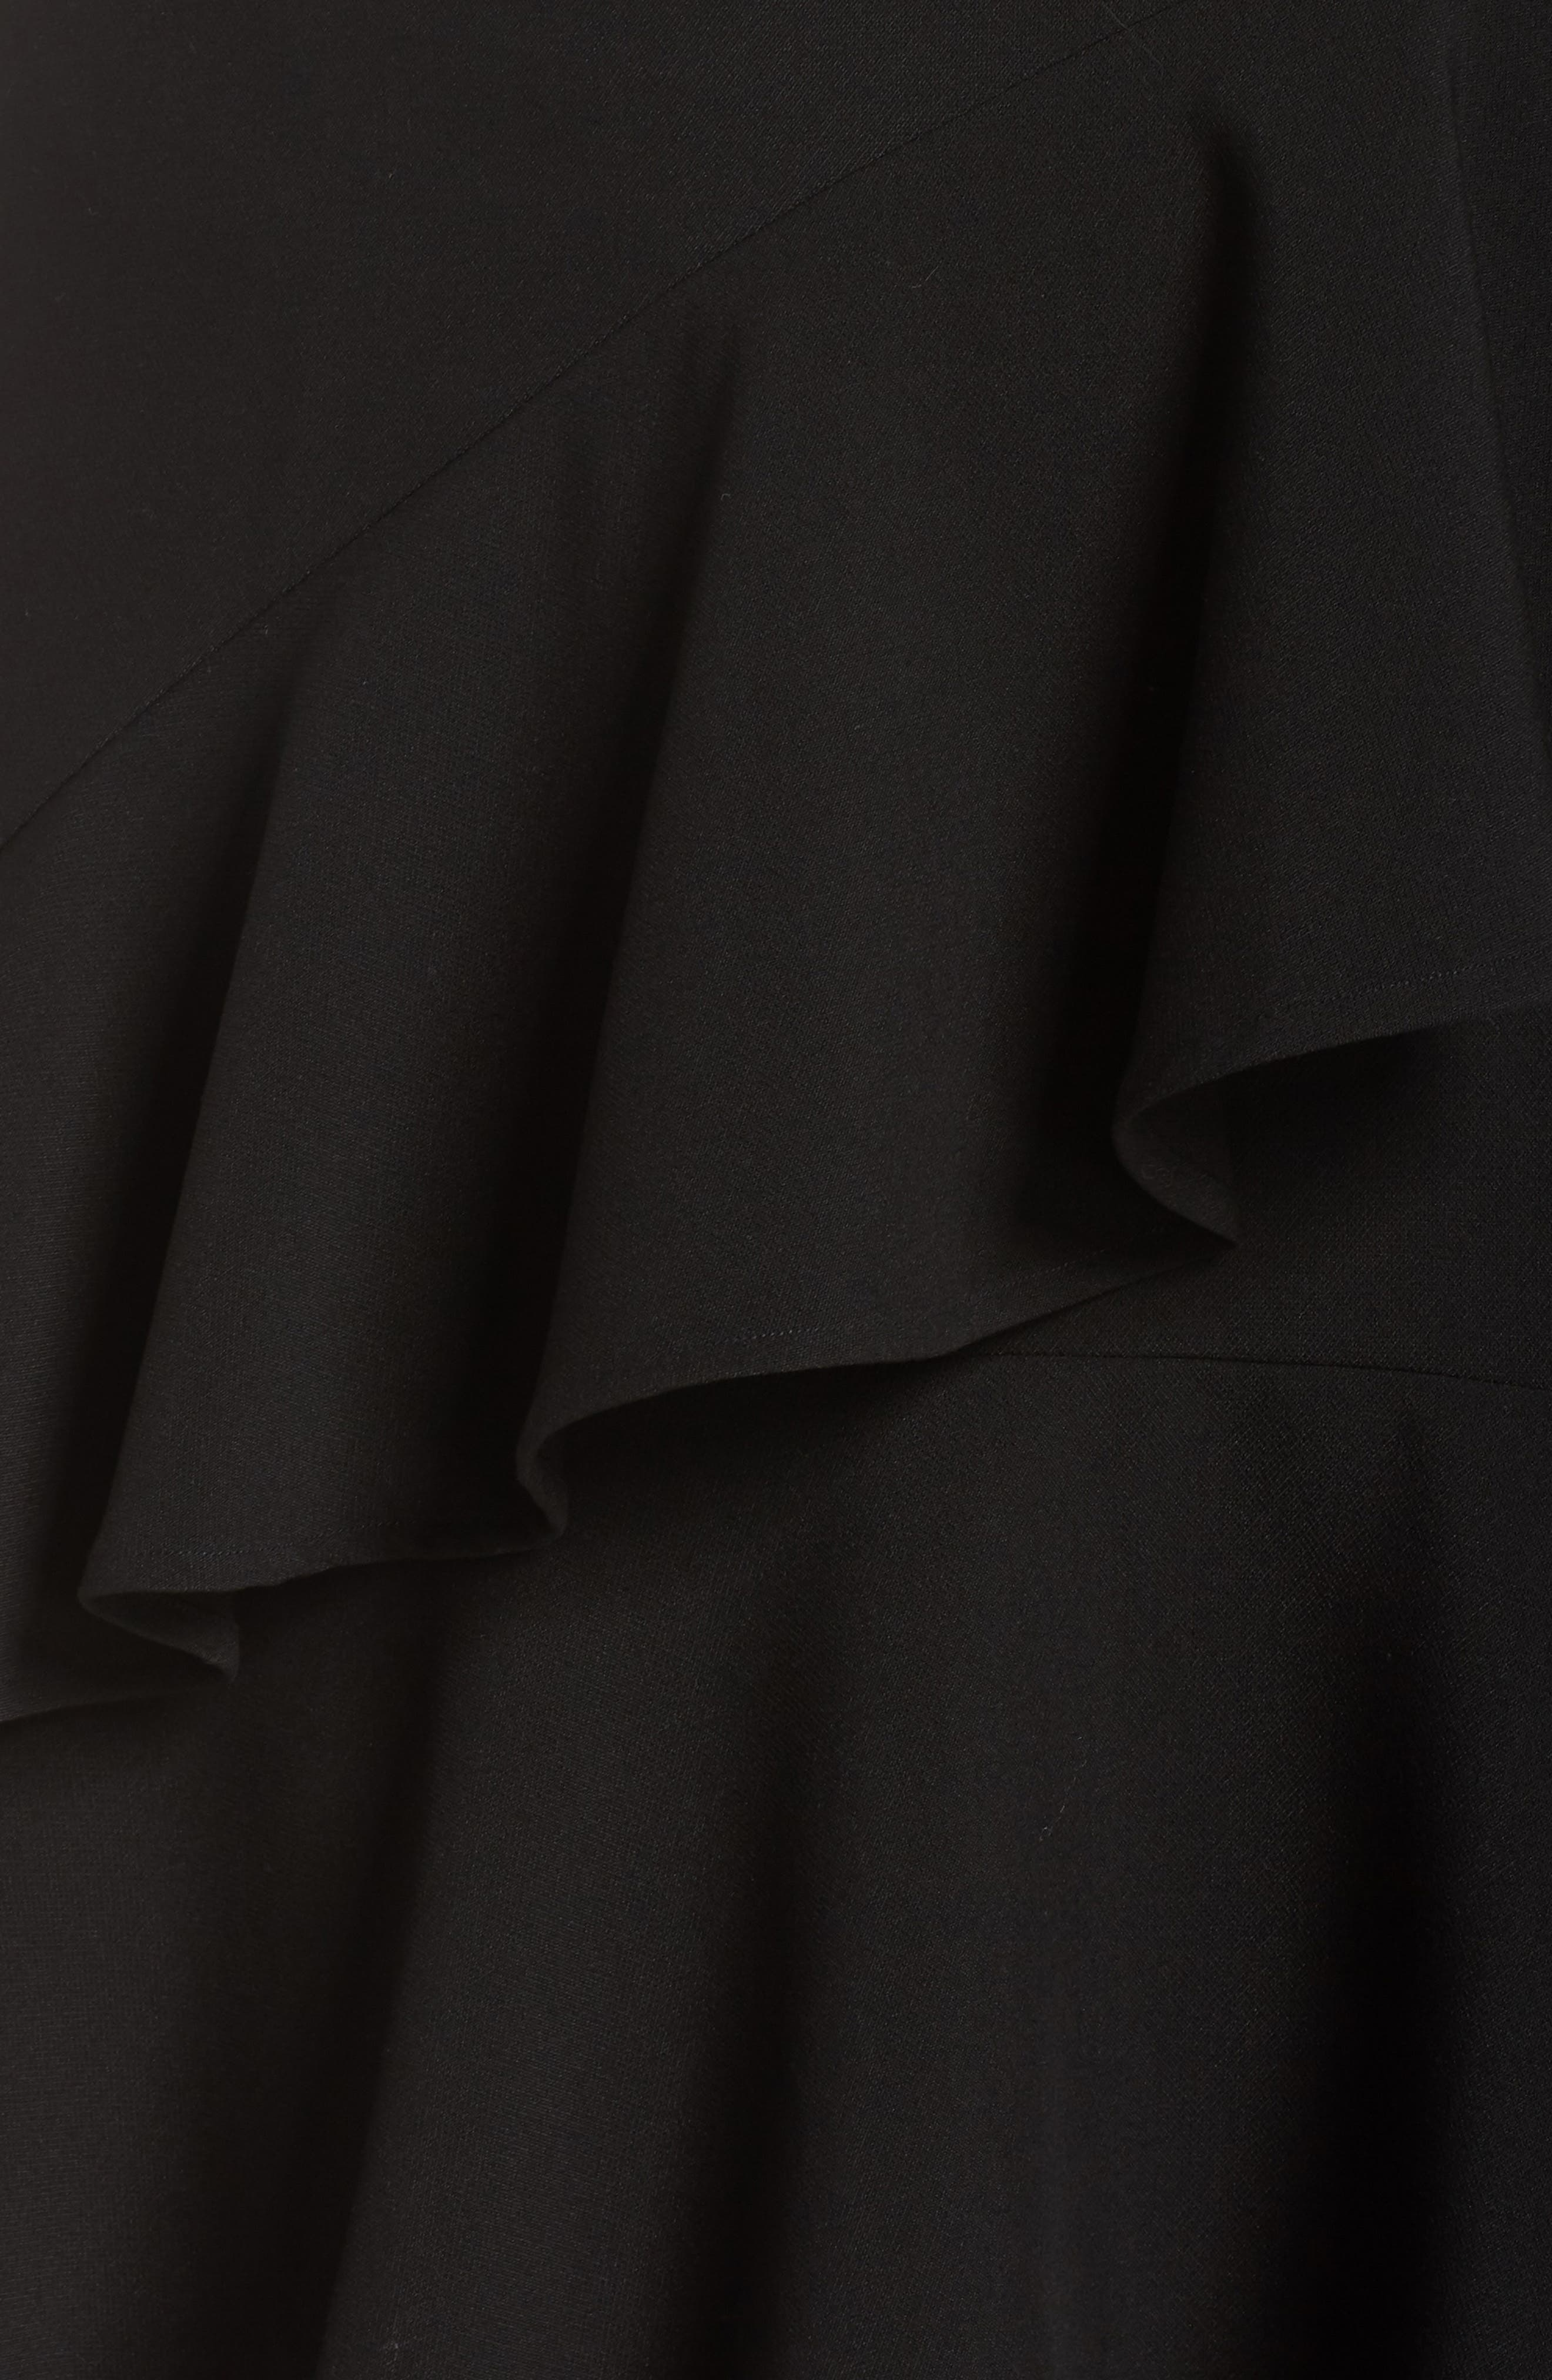 Tiered Ruffle Crepe Skirt,                             Alternate thumbnail 5, color,                             RICH BLACK